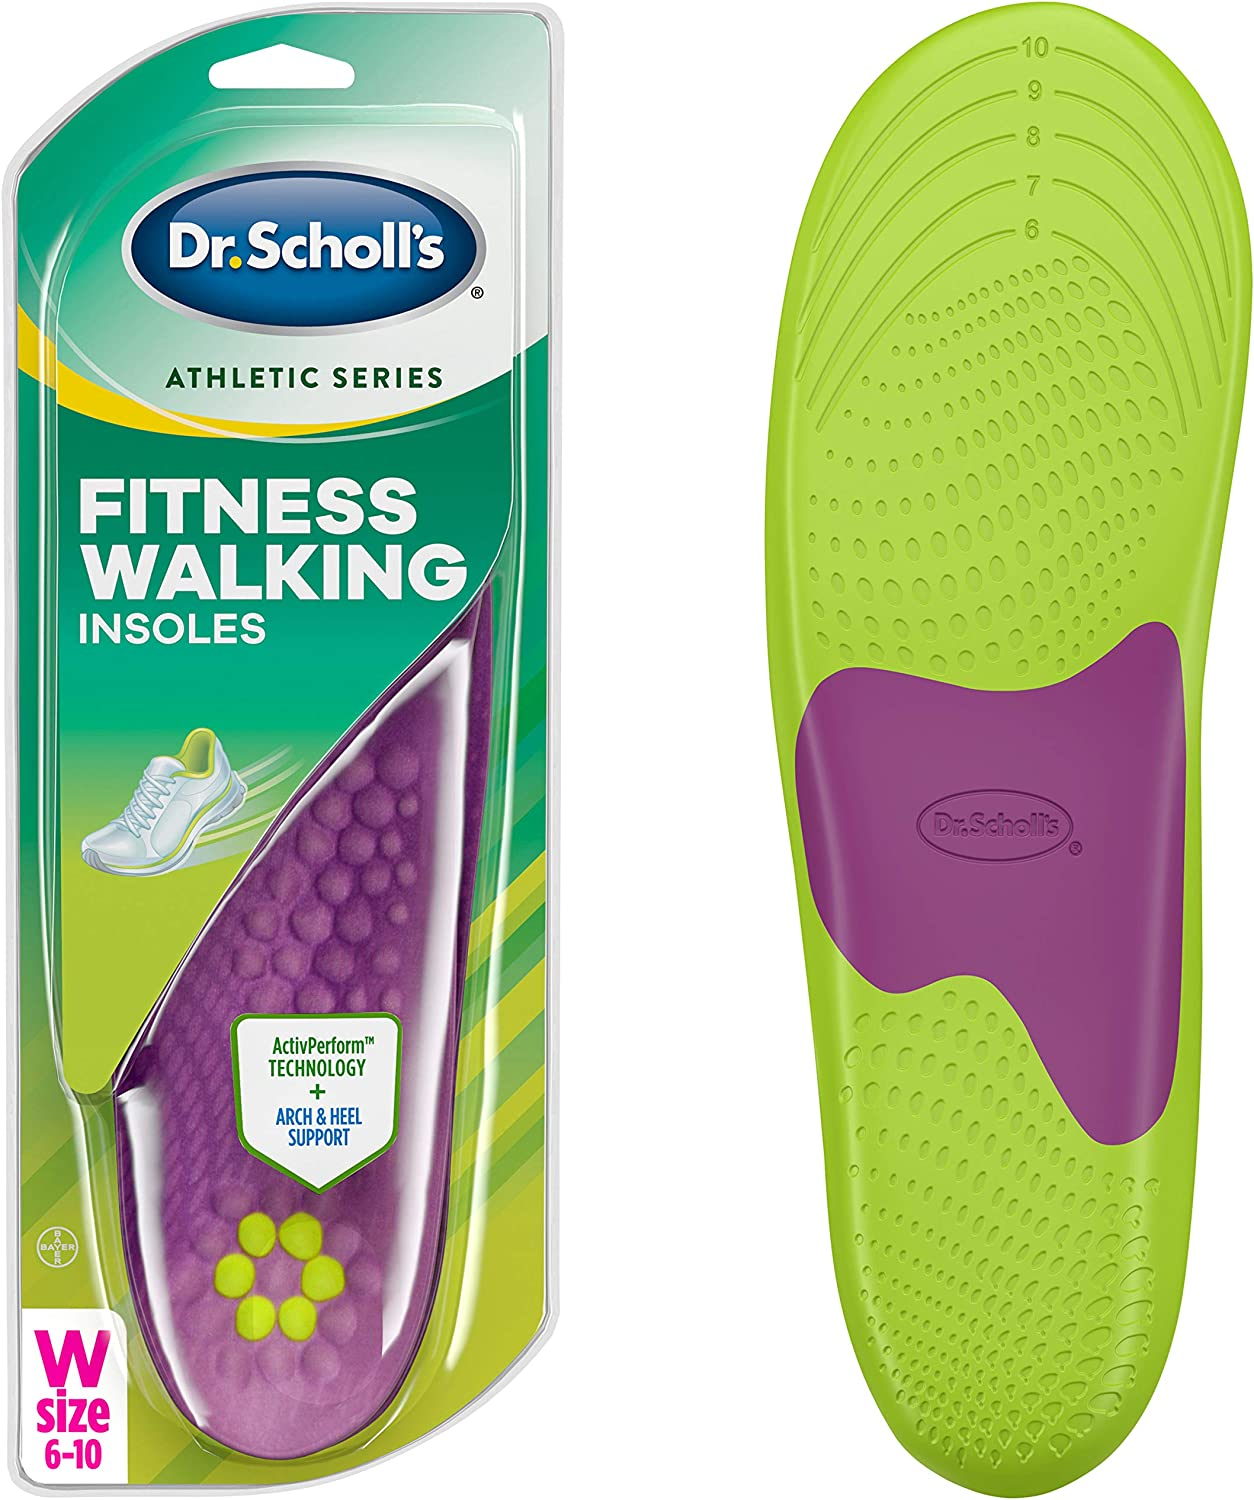 Dr. Scholl's FITNESS WALKING Insoles - Reduce Stress and Strain on your Lower Body while you Walk and Reduce Muscle Soreness